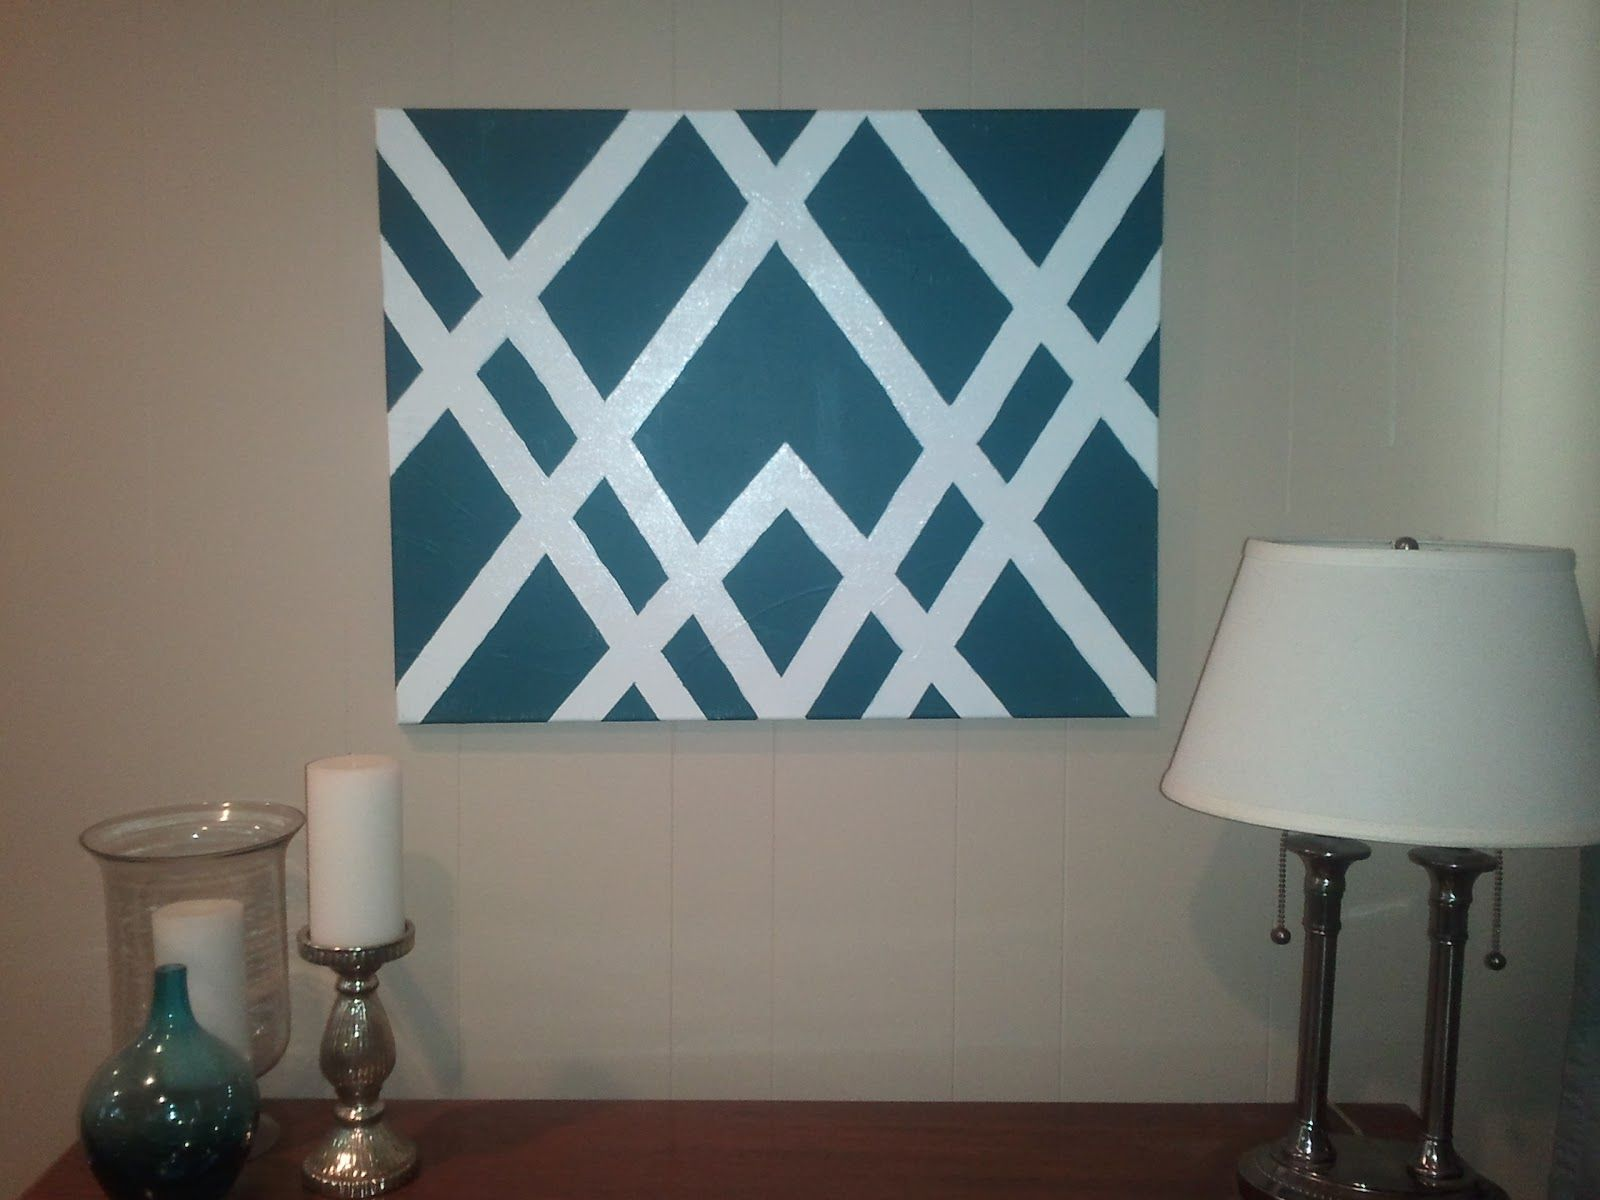 Awesome Paint Patterns with Tape